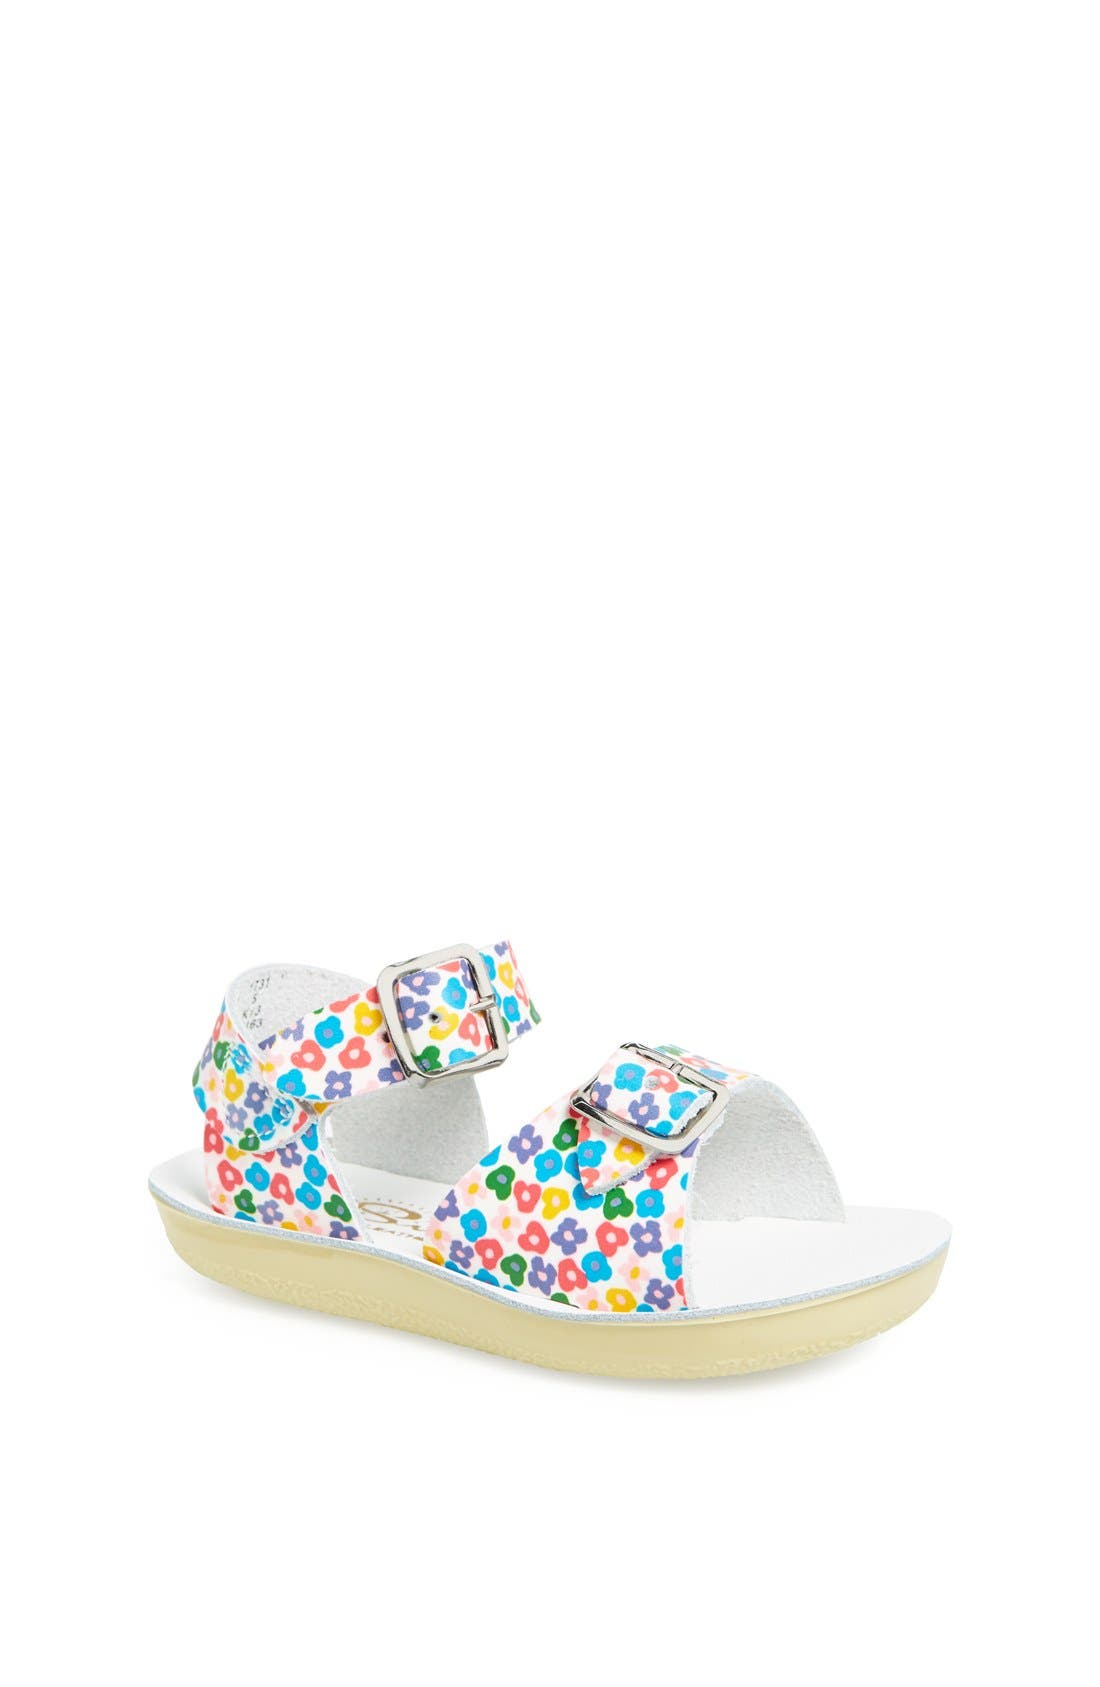 Alternate Image 1 Selected - Salt Water Sandals by Hoy 'Surfer' Sandal (Baby & Walker)